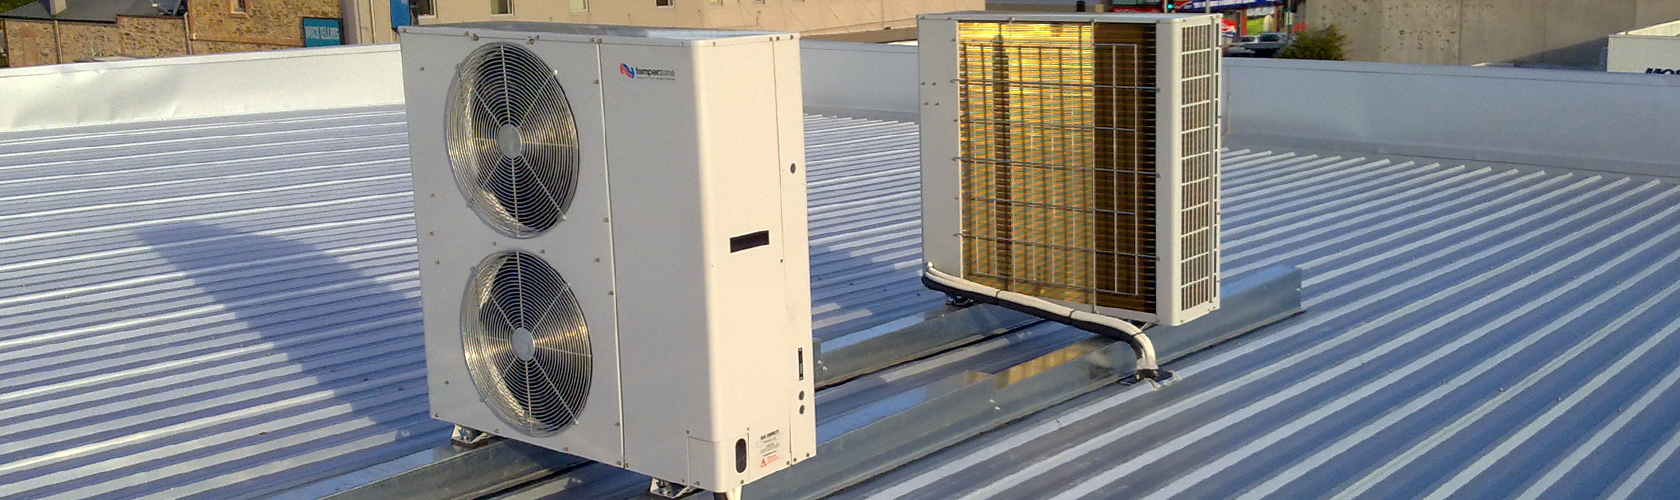 Adelaide Air Conditioner Installtion